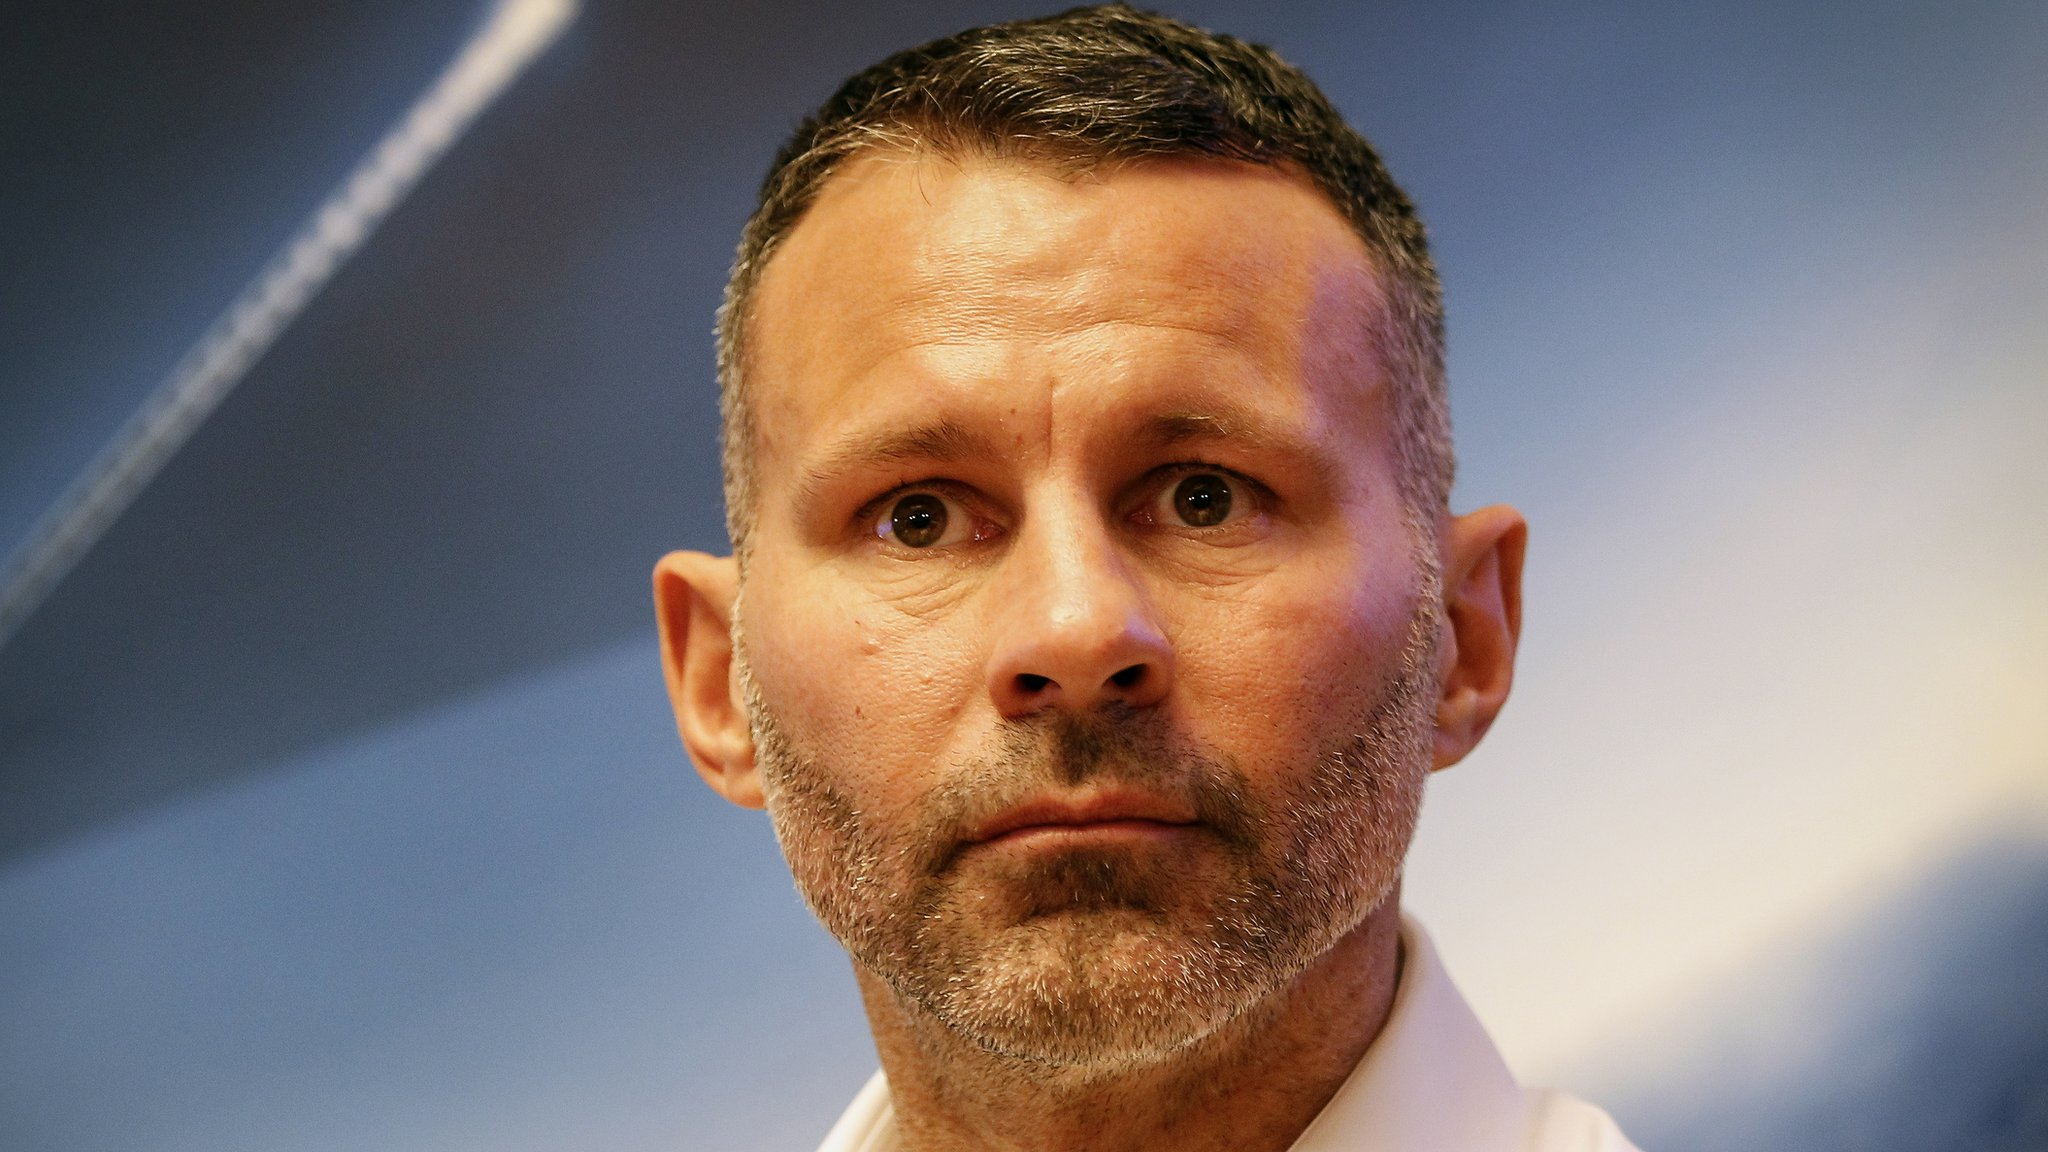 Ryan Giggs: 'Too many foreign managers in British football'